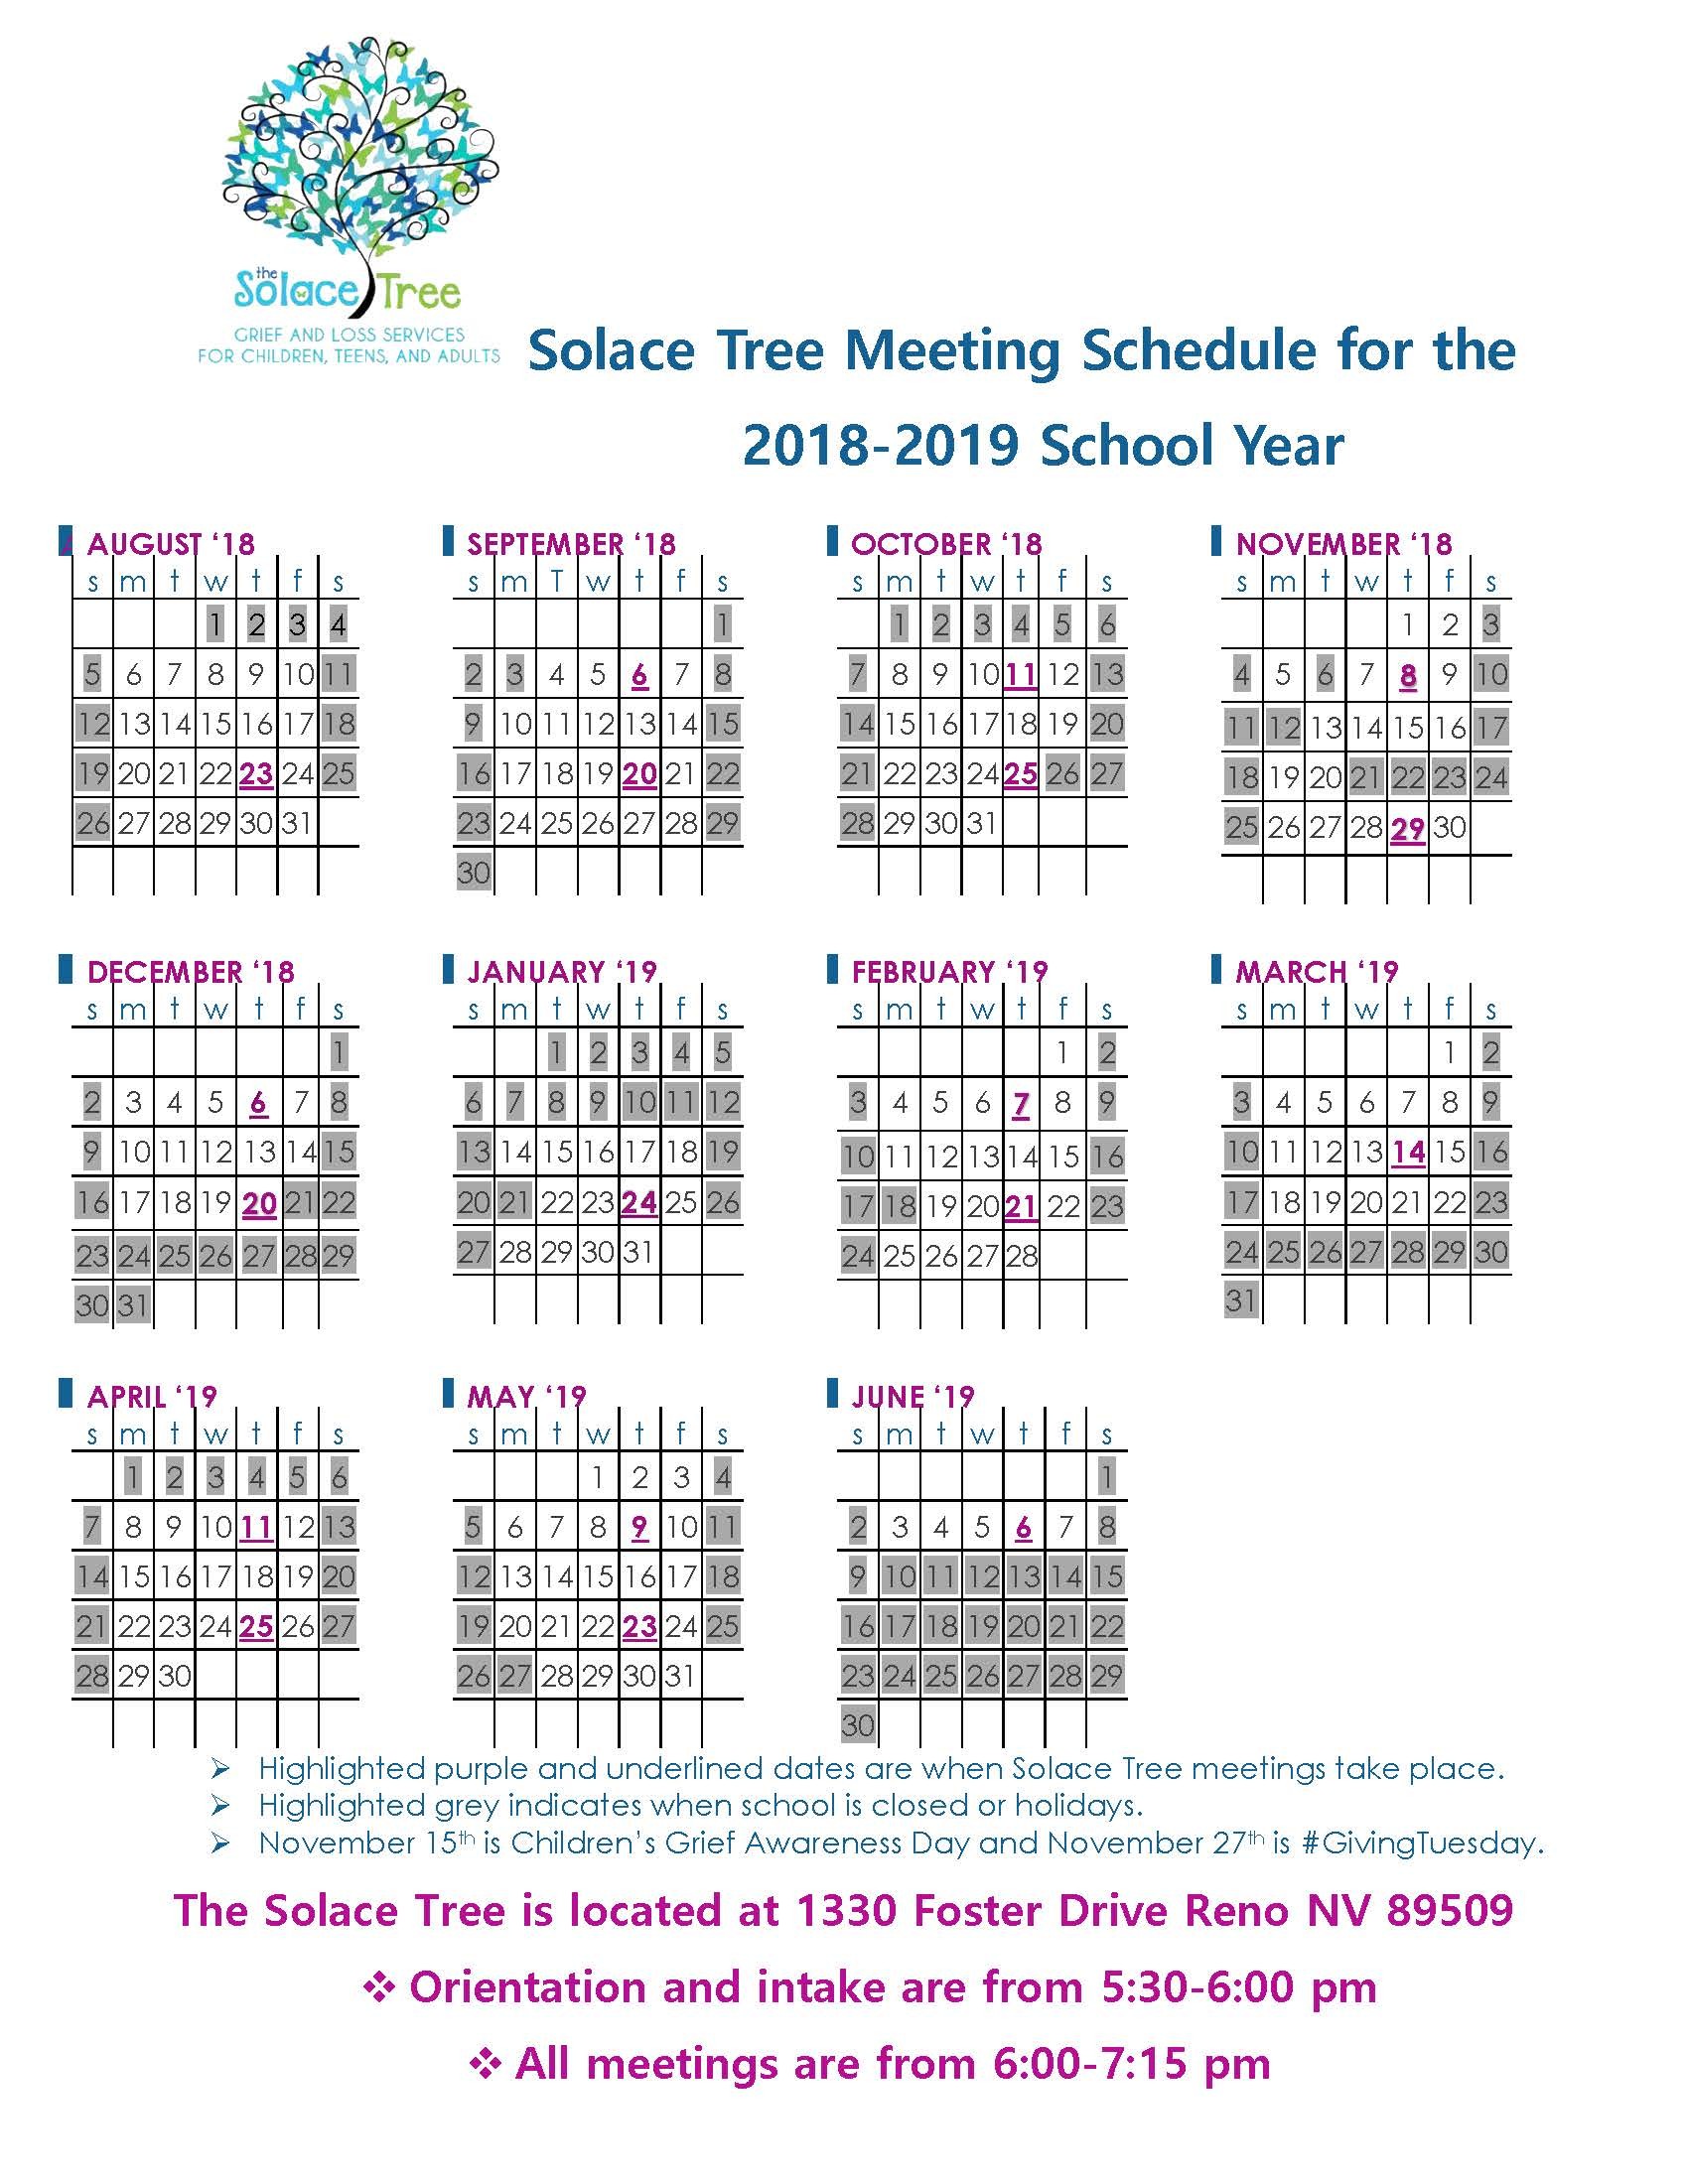 Solace Tree Meeting Schedule for 2018